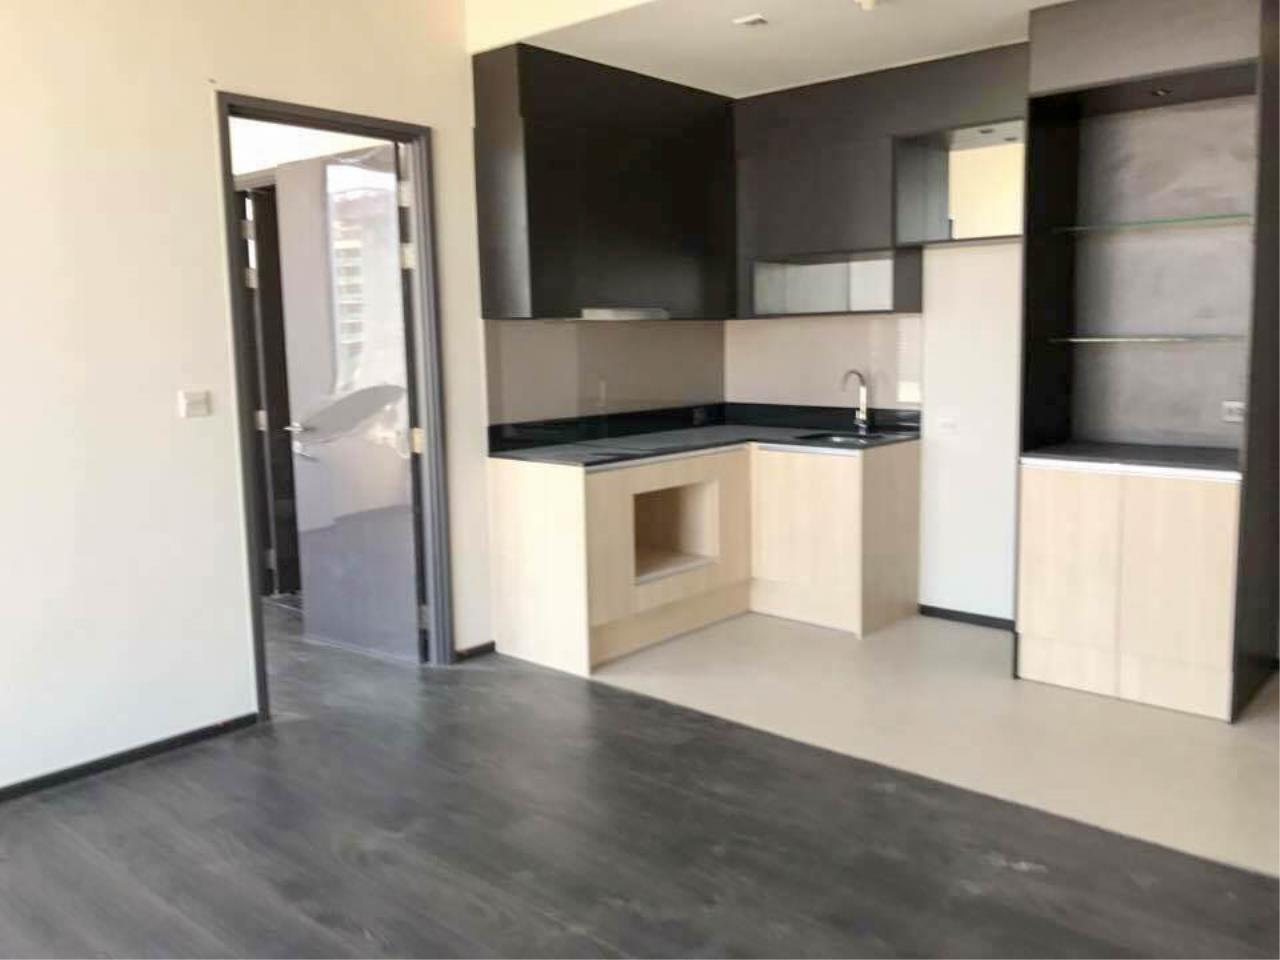 RE/MAX Properties Agency's 1 Bedroom 41 Sq.M. for sale at EDGE Sukhumvit 23 1